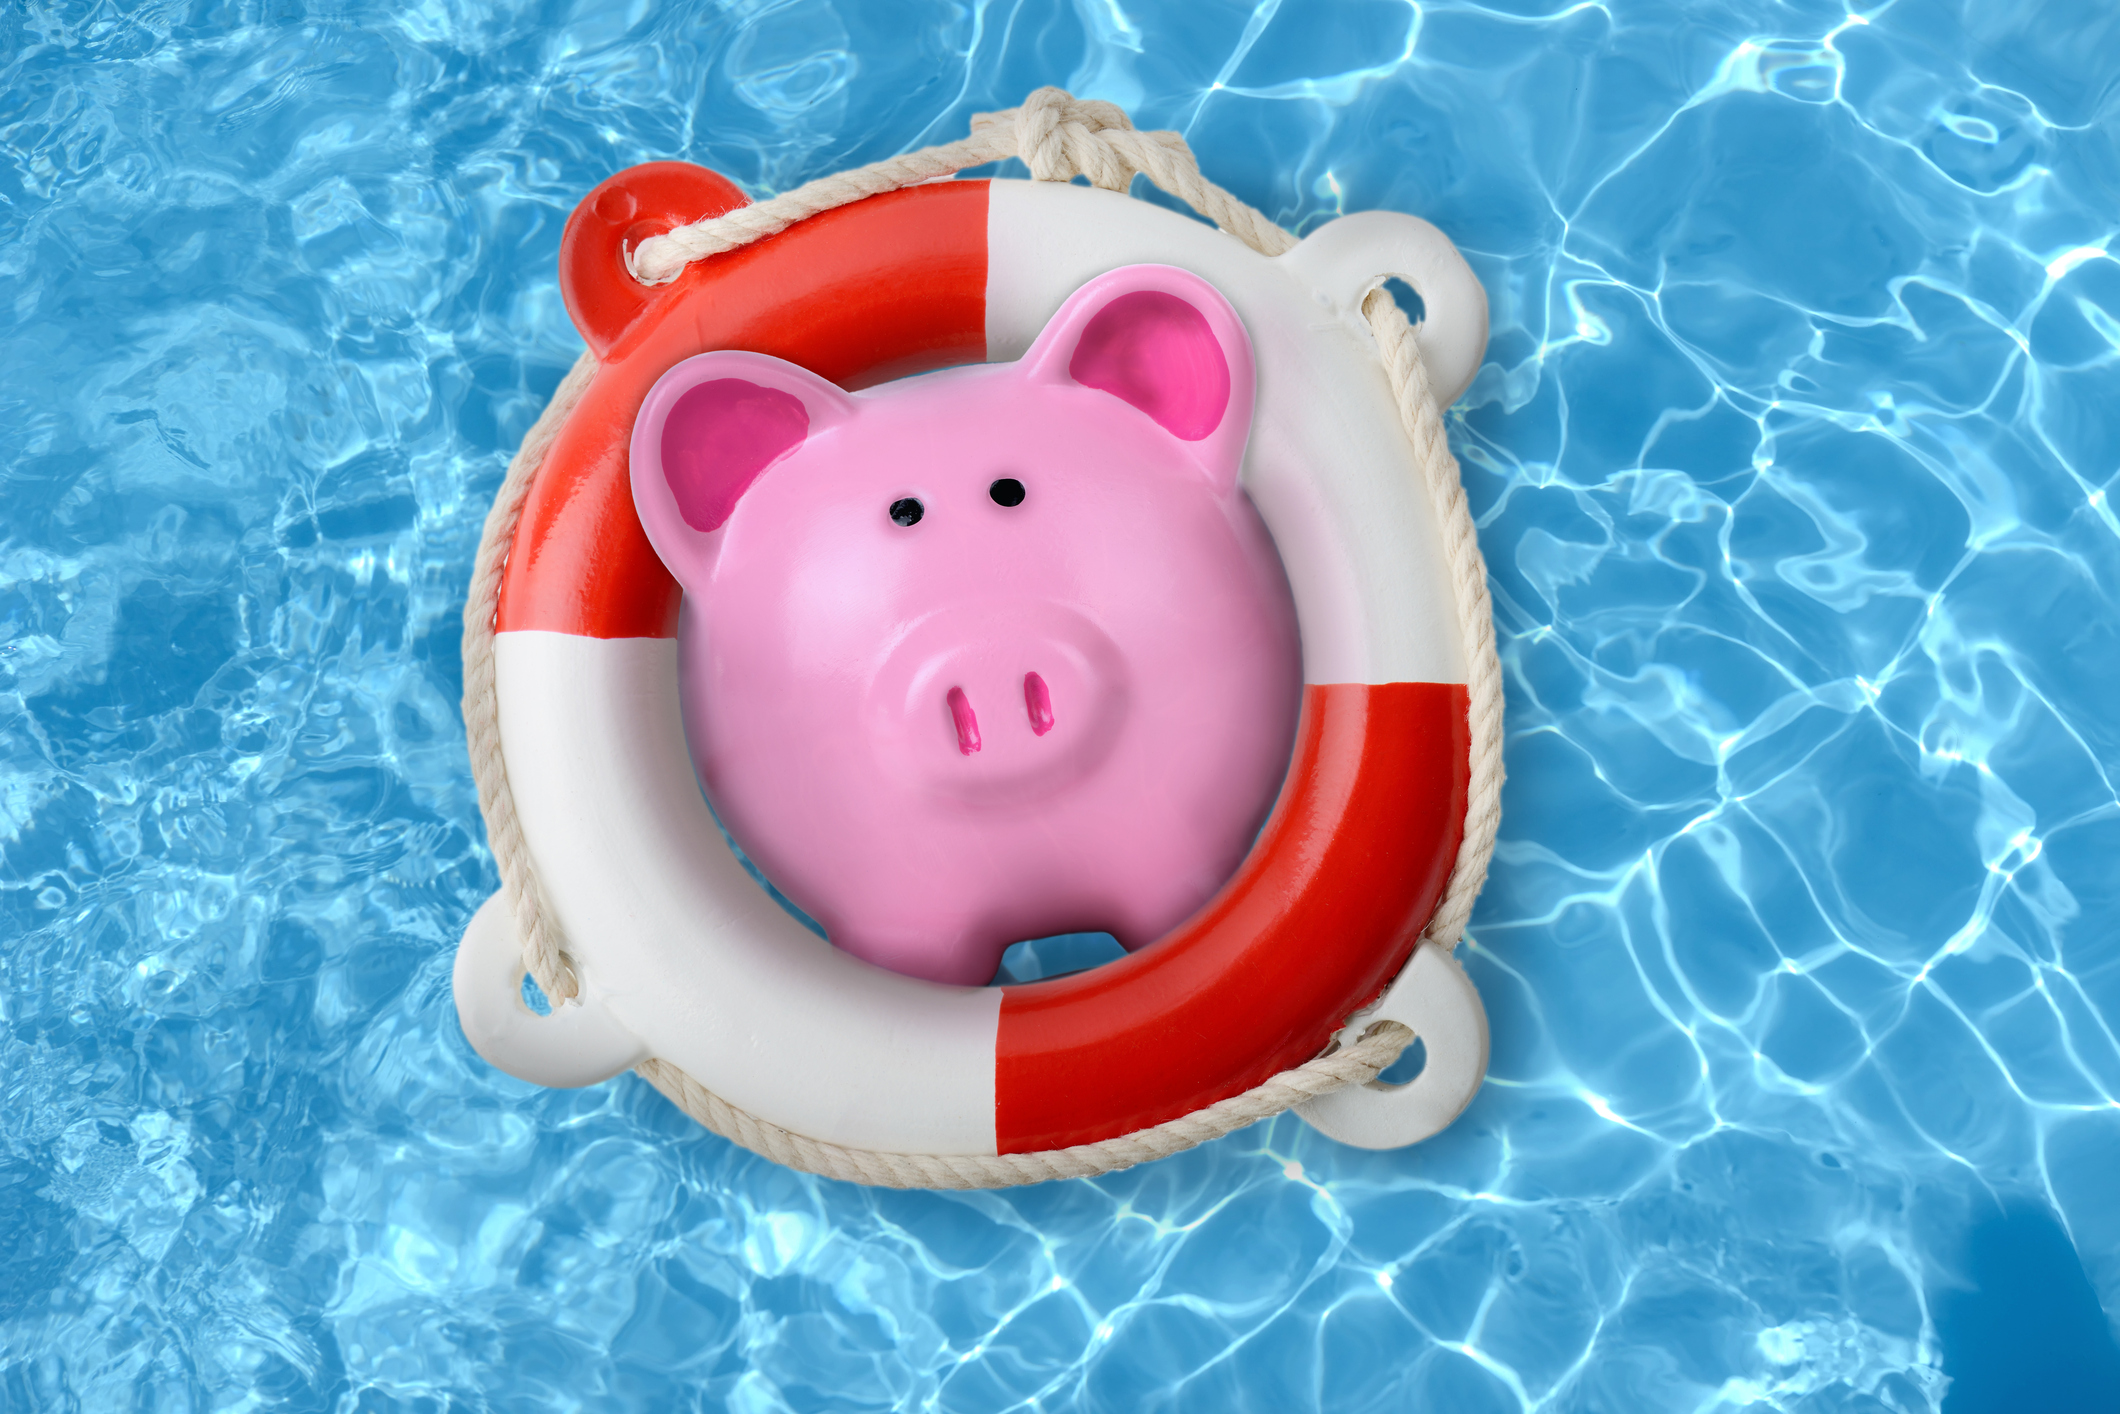 Piggy bank in a lifebuoy